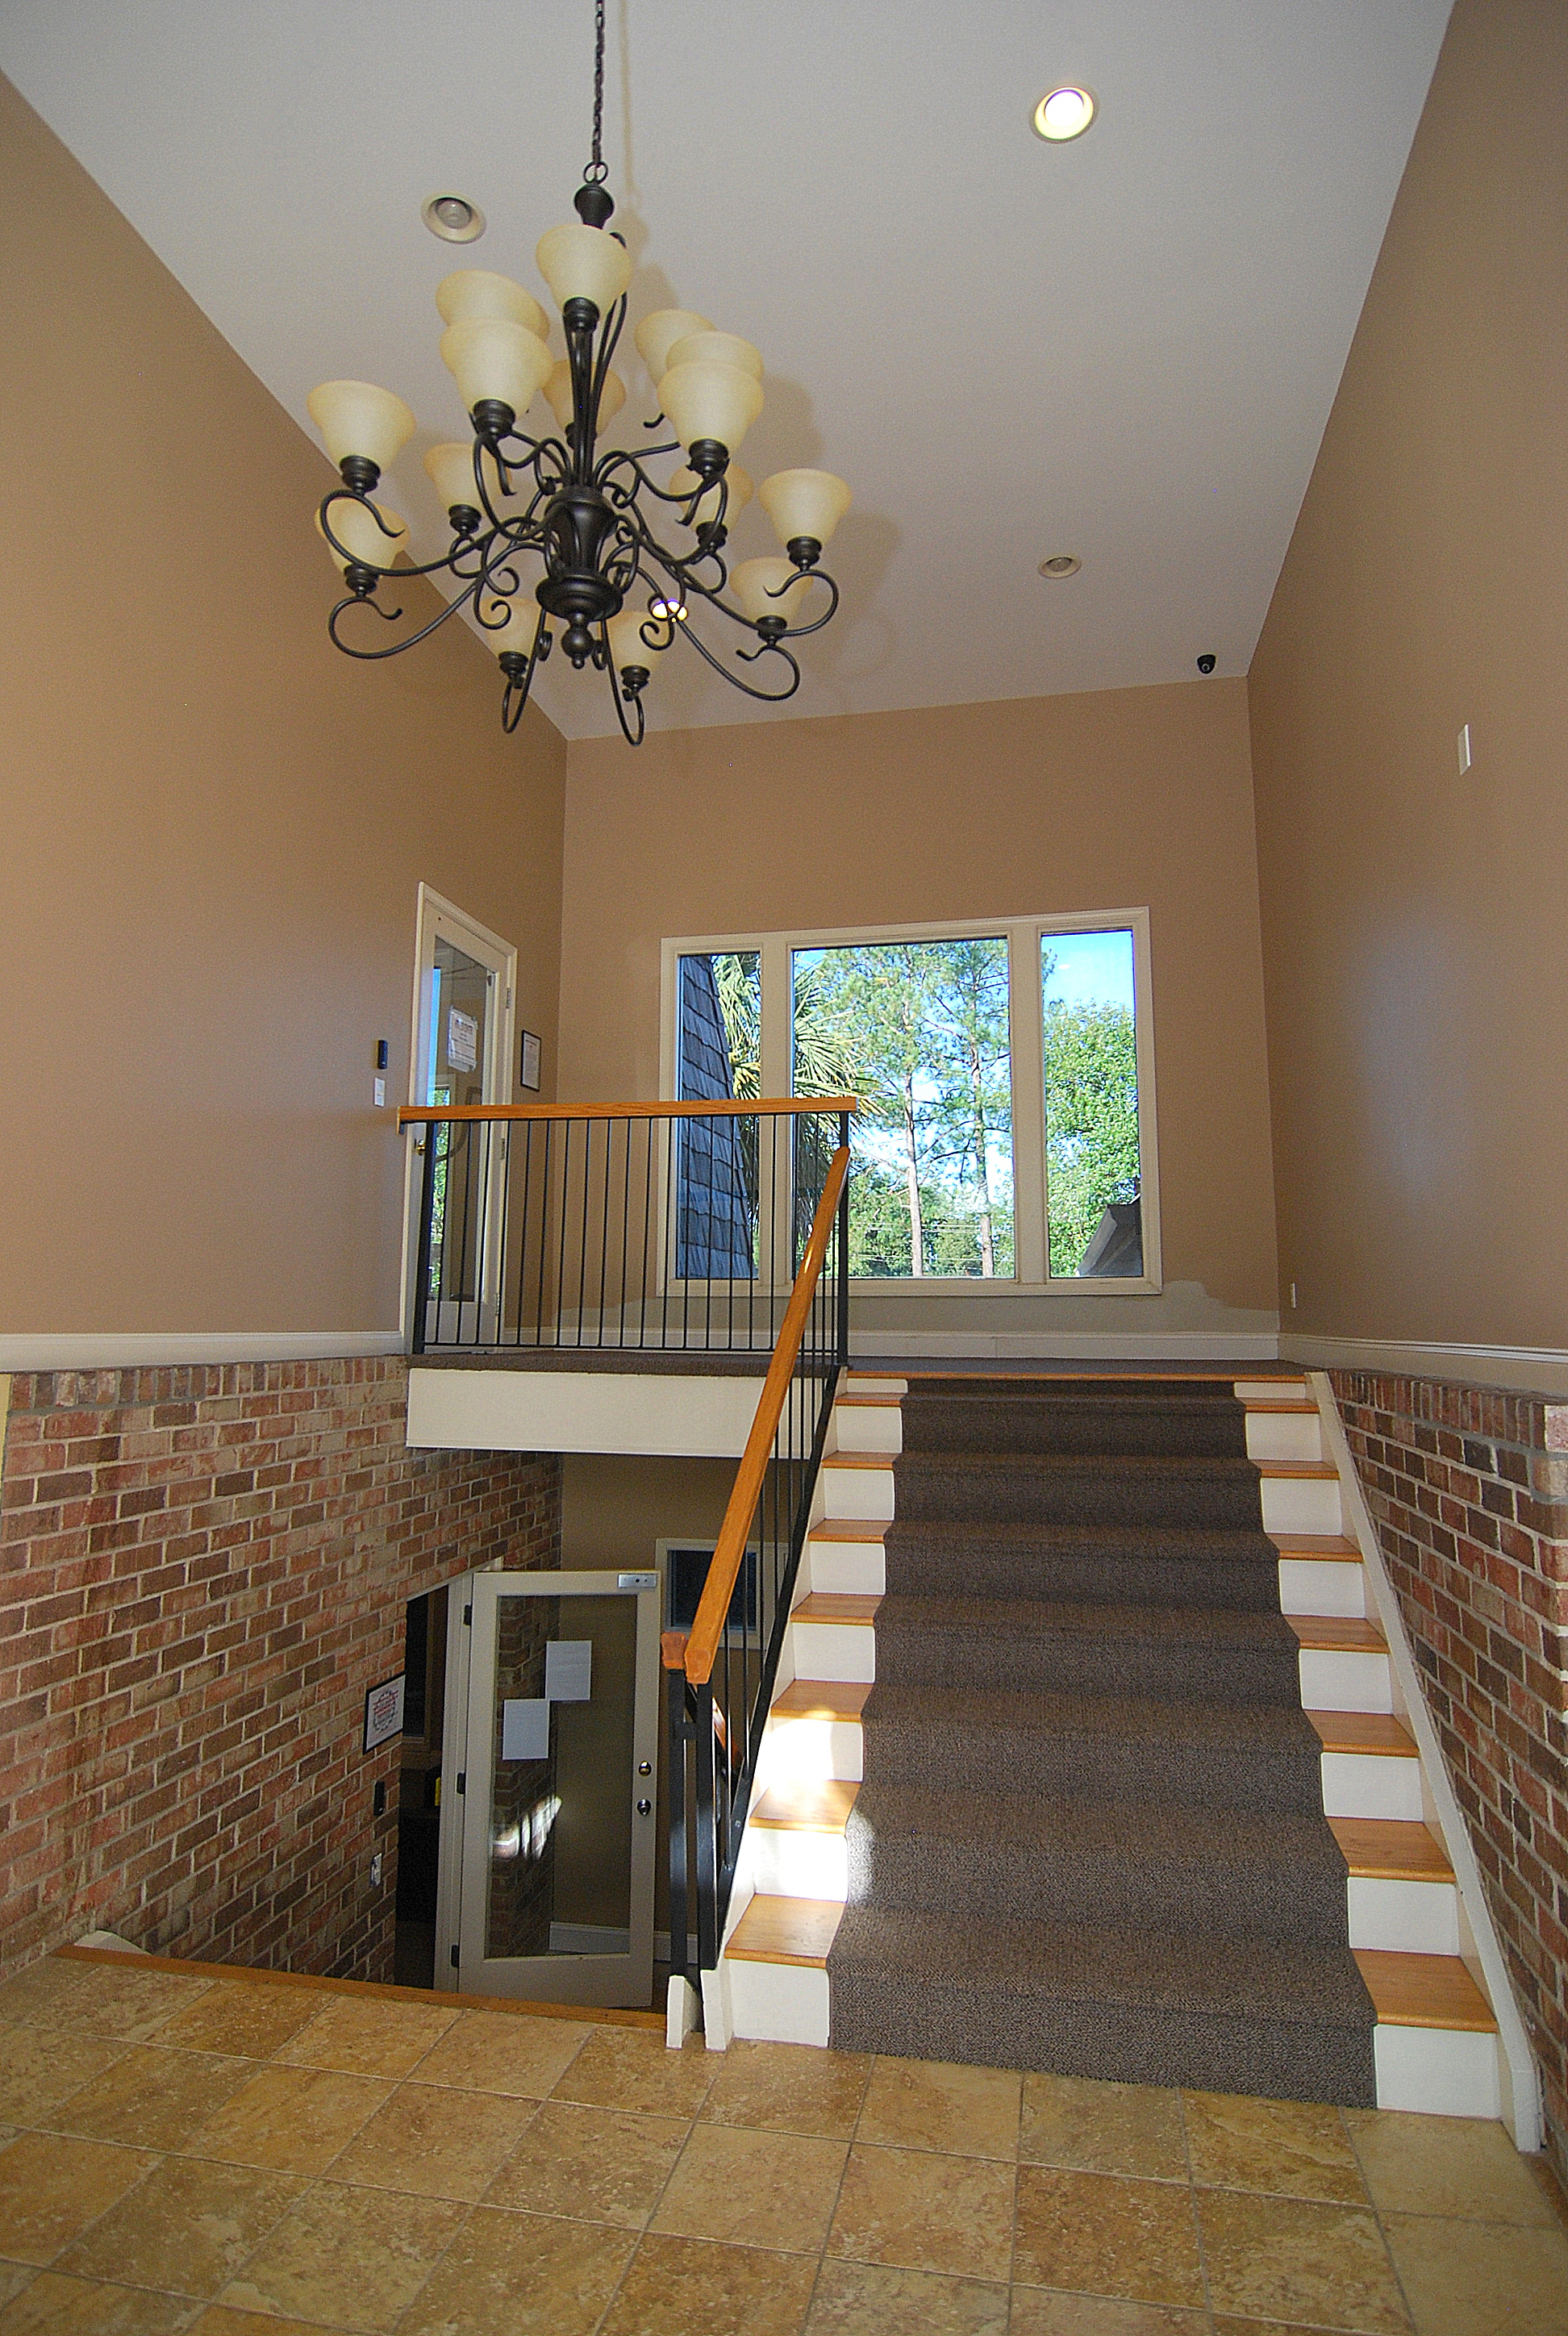 Briargate - Stairway to Fitness Center